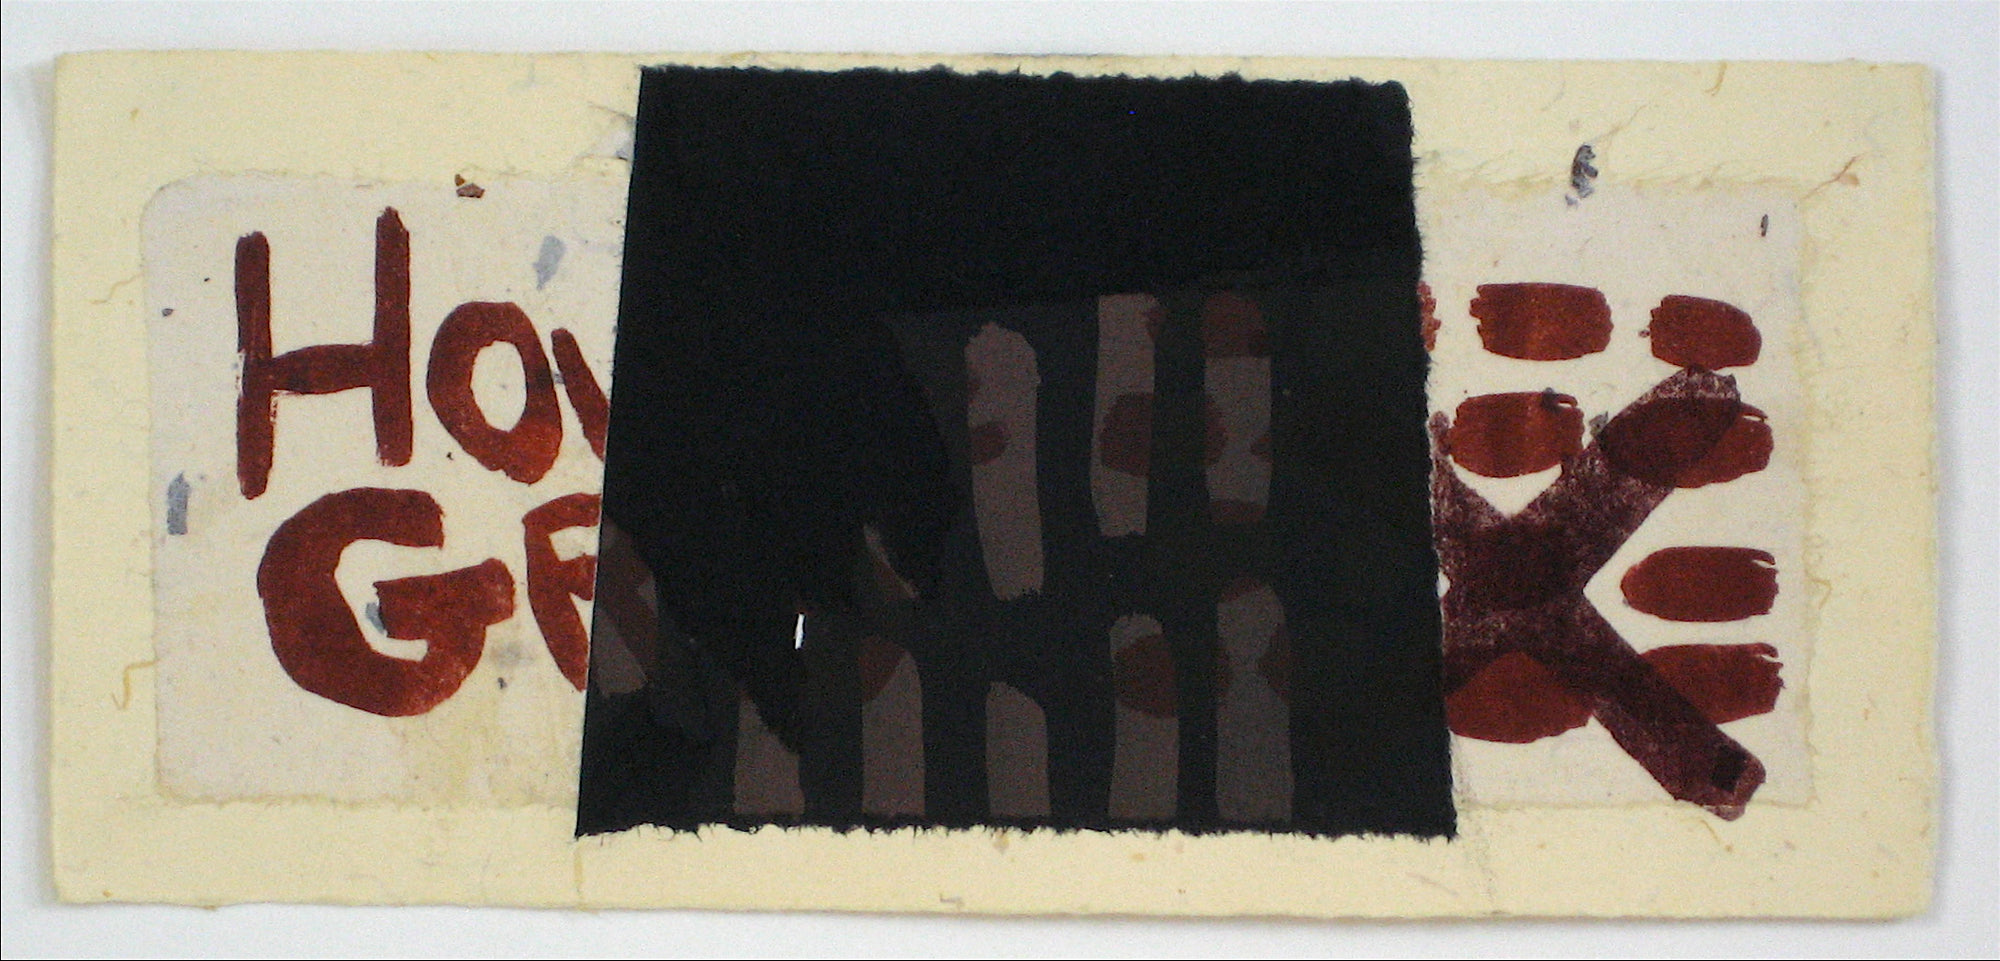 <i>House of Cards Series</i>, Abstracted Graphic Block <br>1997 Lithograph <br><br>#11686